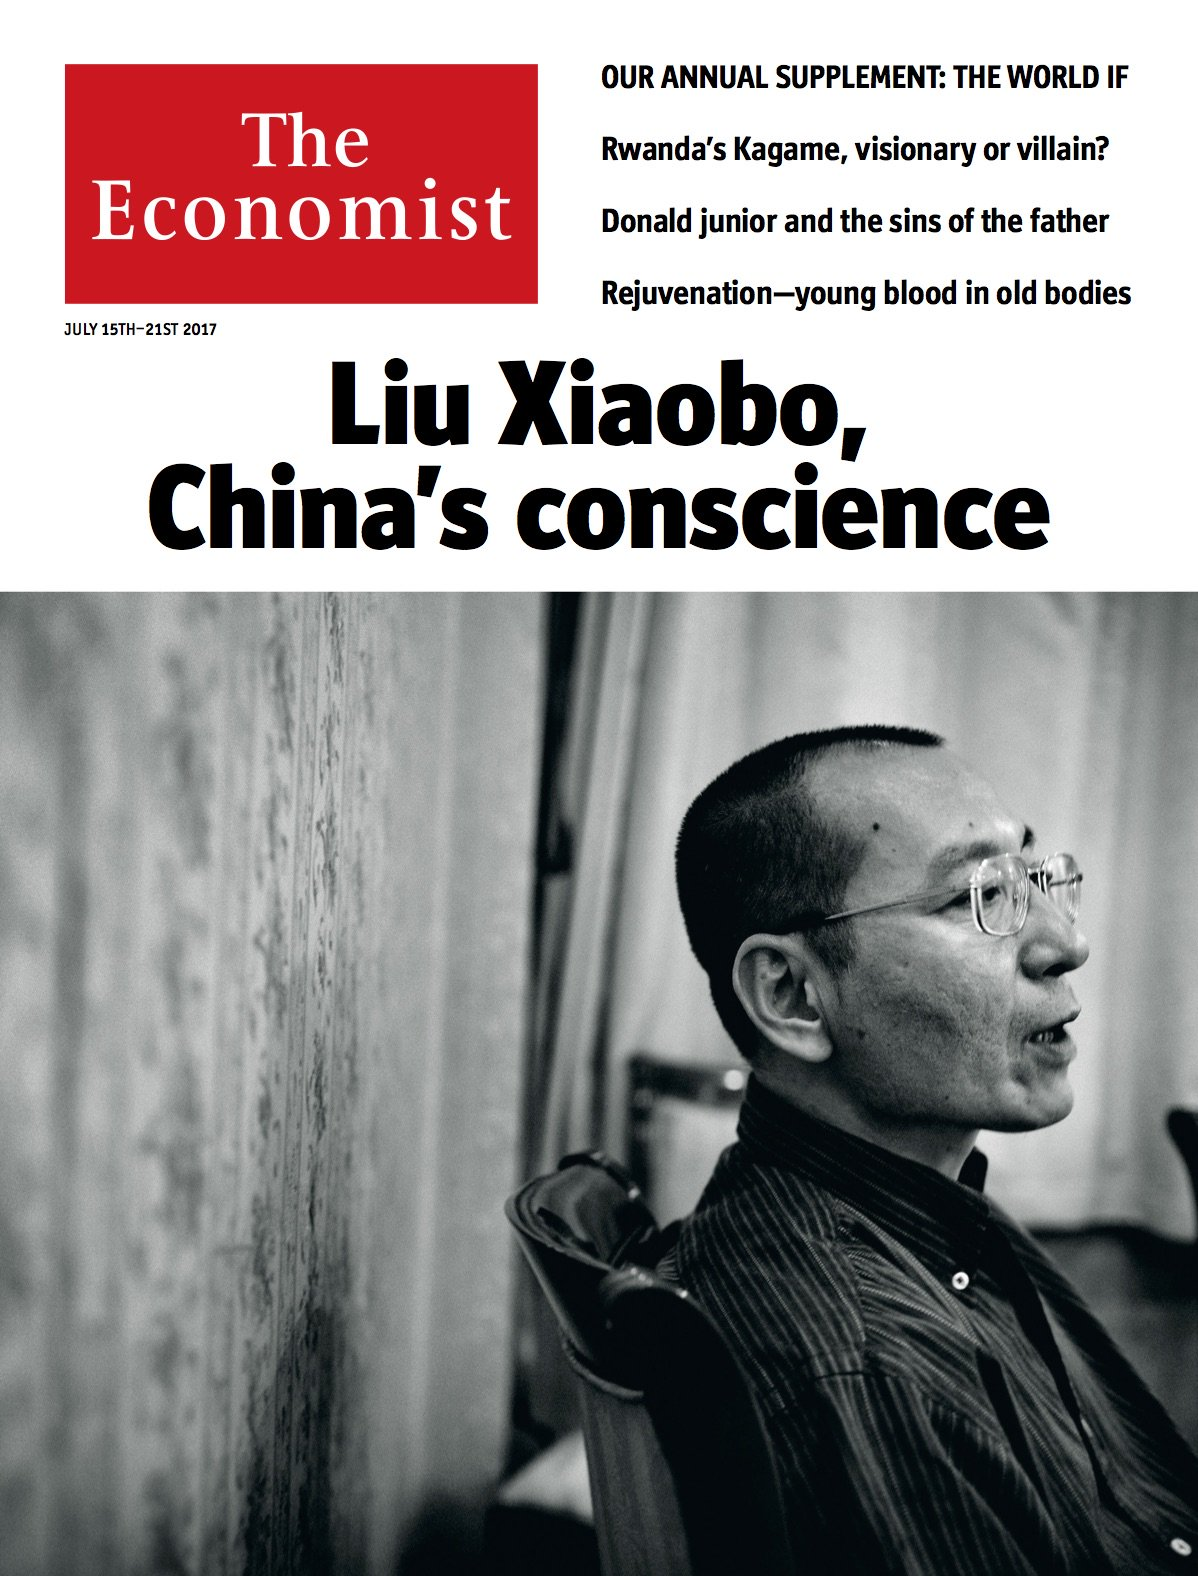 Liu Xiaobo has died. His dignified calls for freedom for China's people made him a global giant of moral dissent